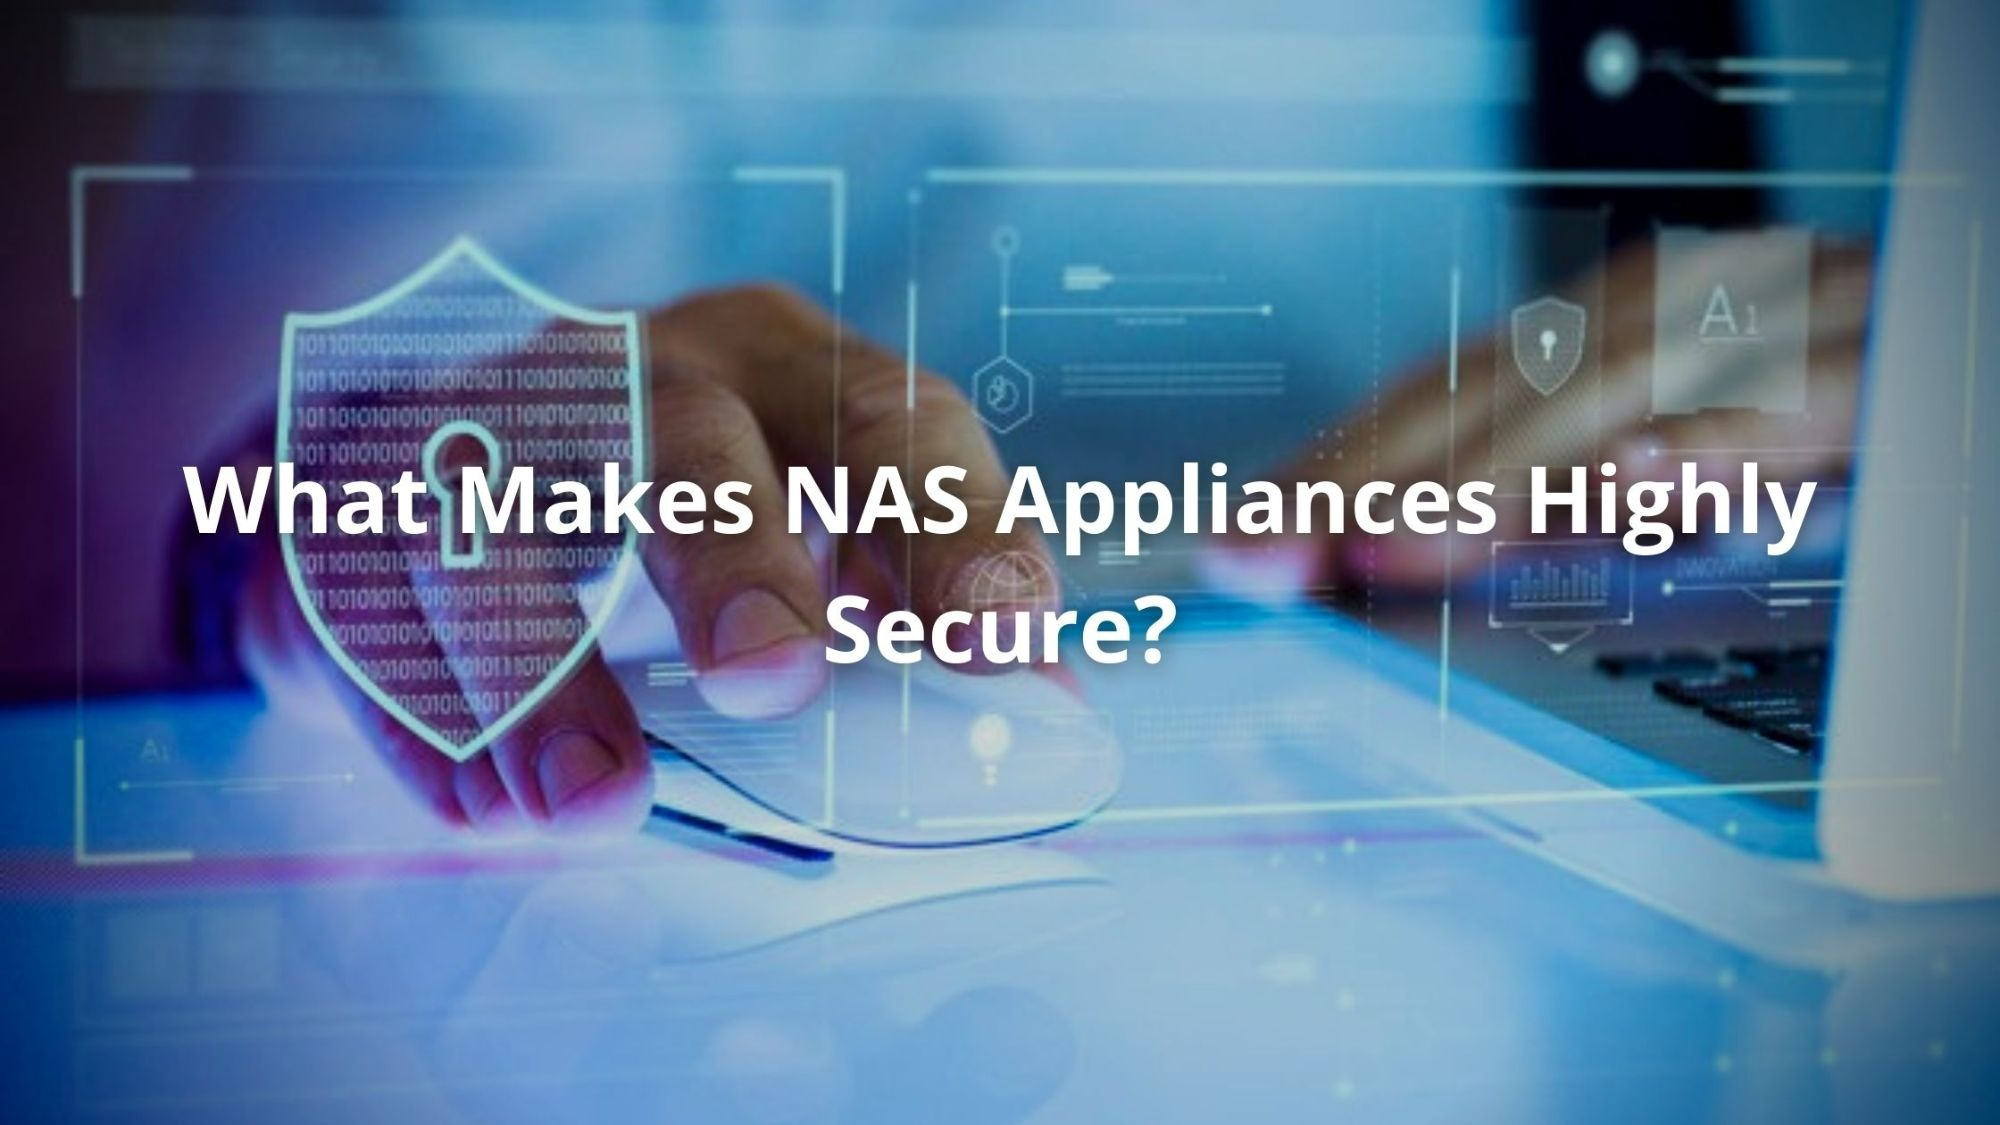 What Makes NAS Appliances Highly Secure?